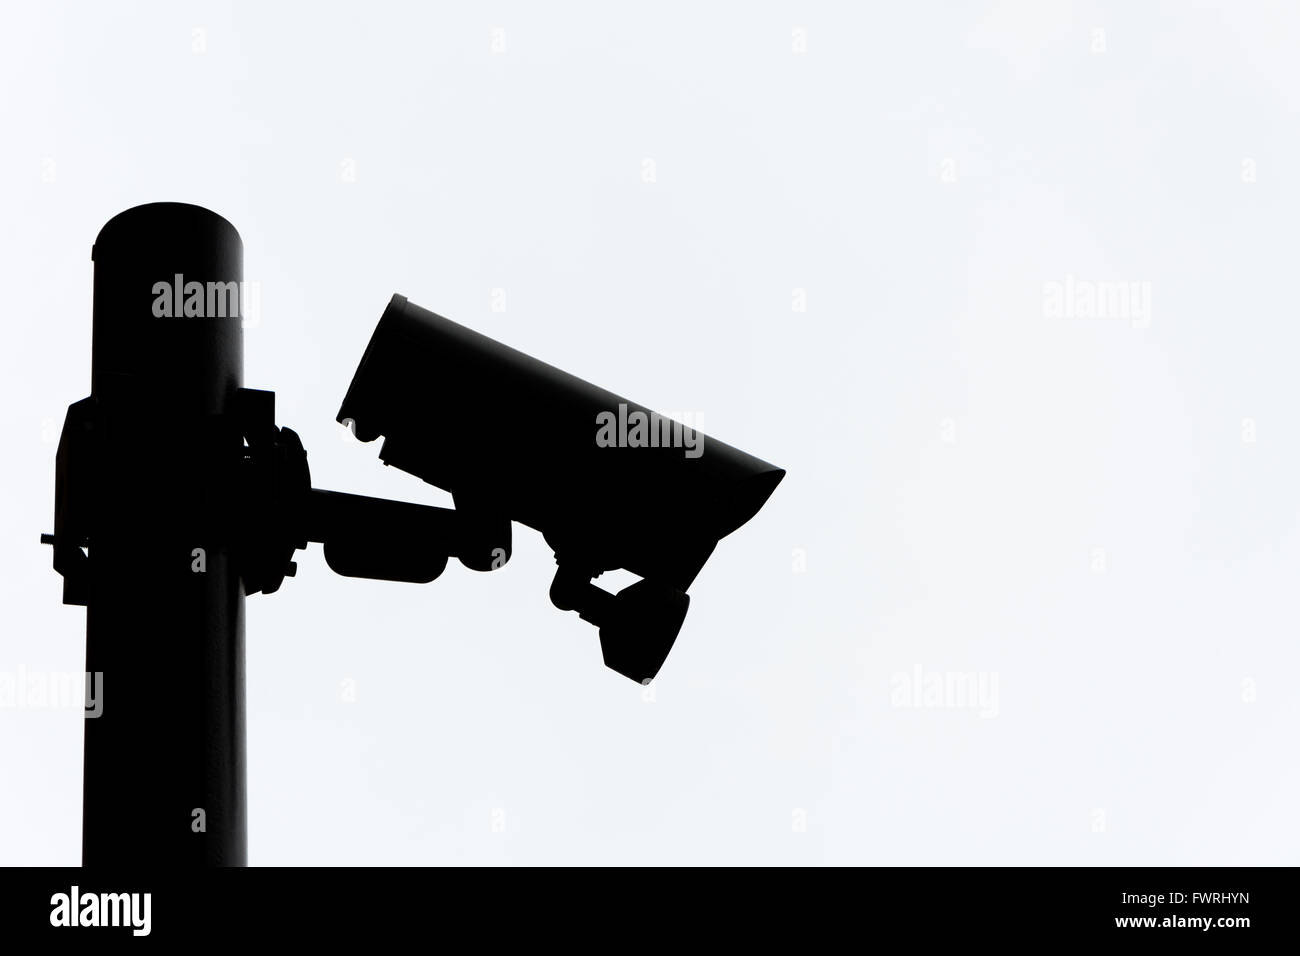 Silhouette of a CCTV camera on a pole. - Stock Image